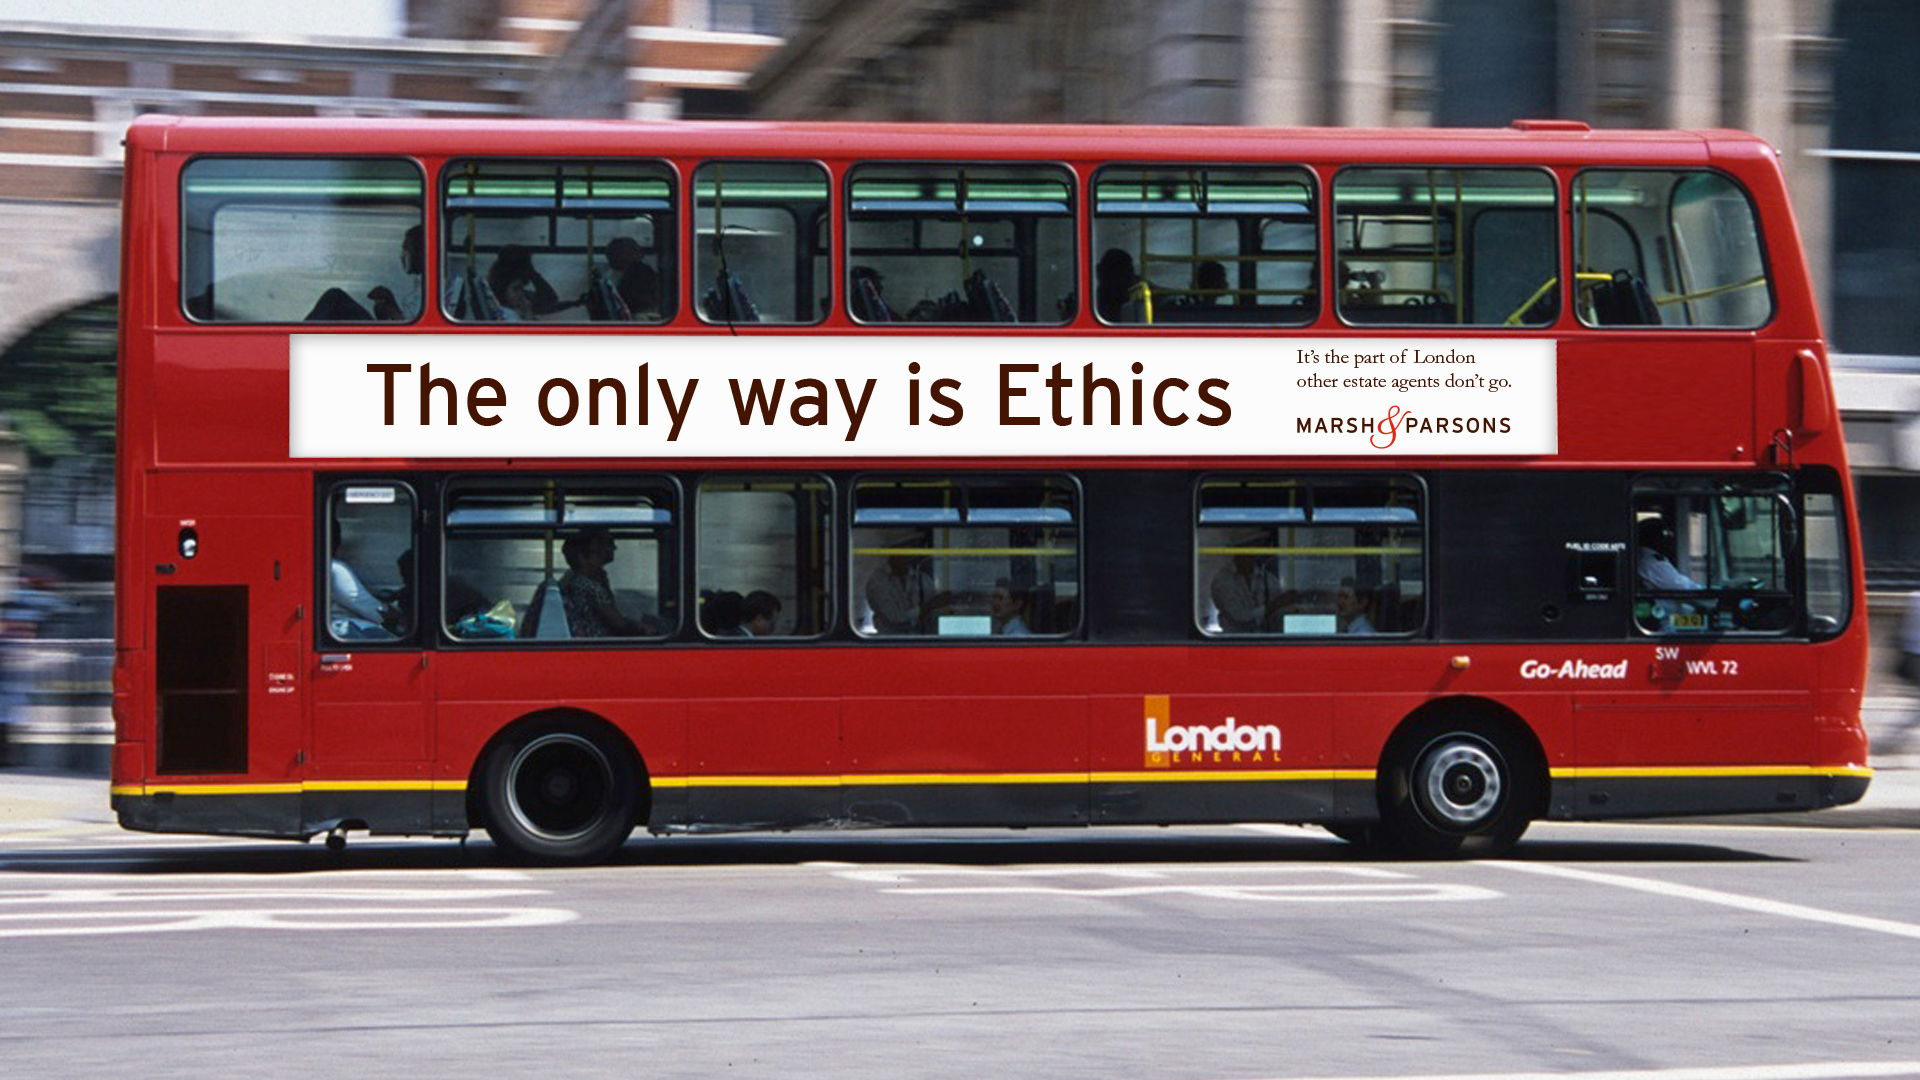 M&P_ETHICS_bus.jpg